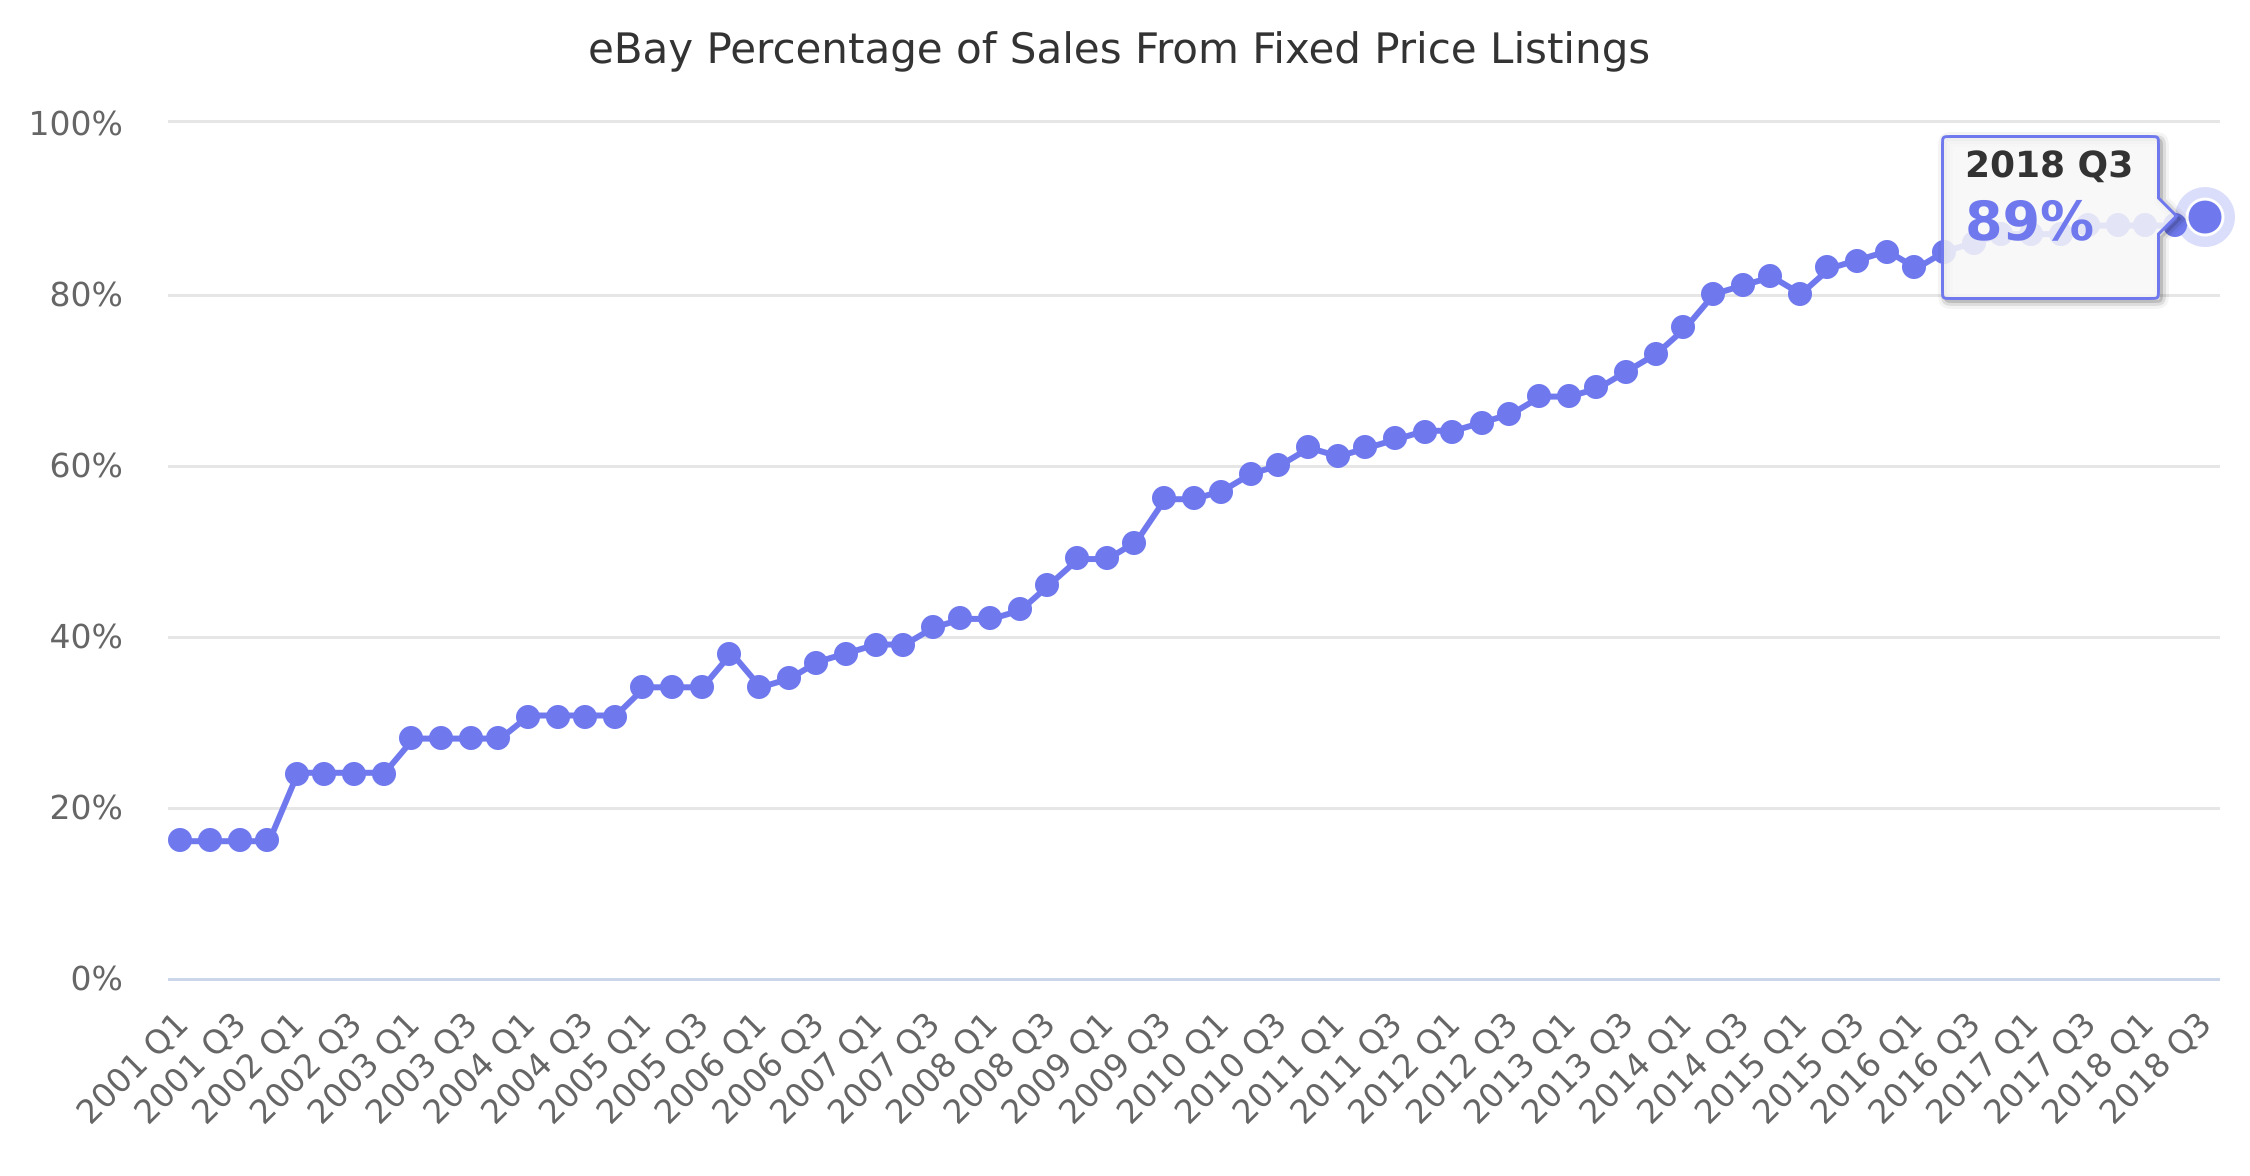 eBay Percentage of Sales From Fixed Price Listings